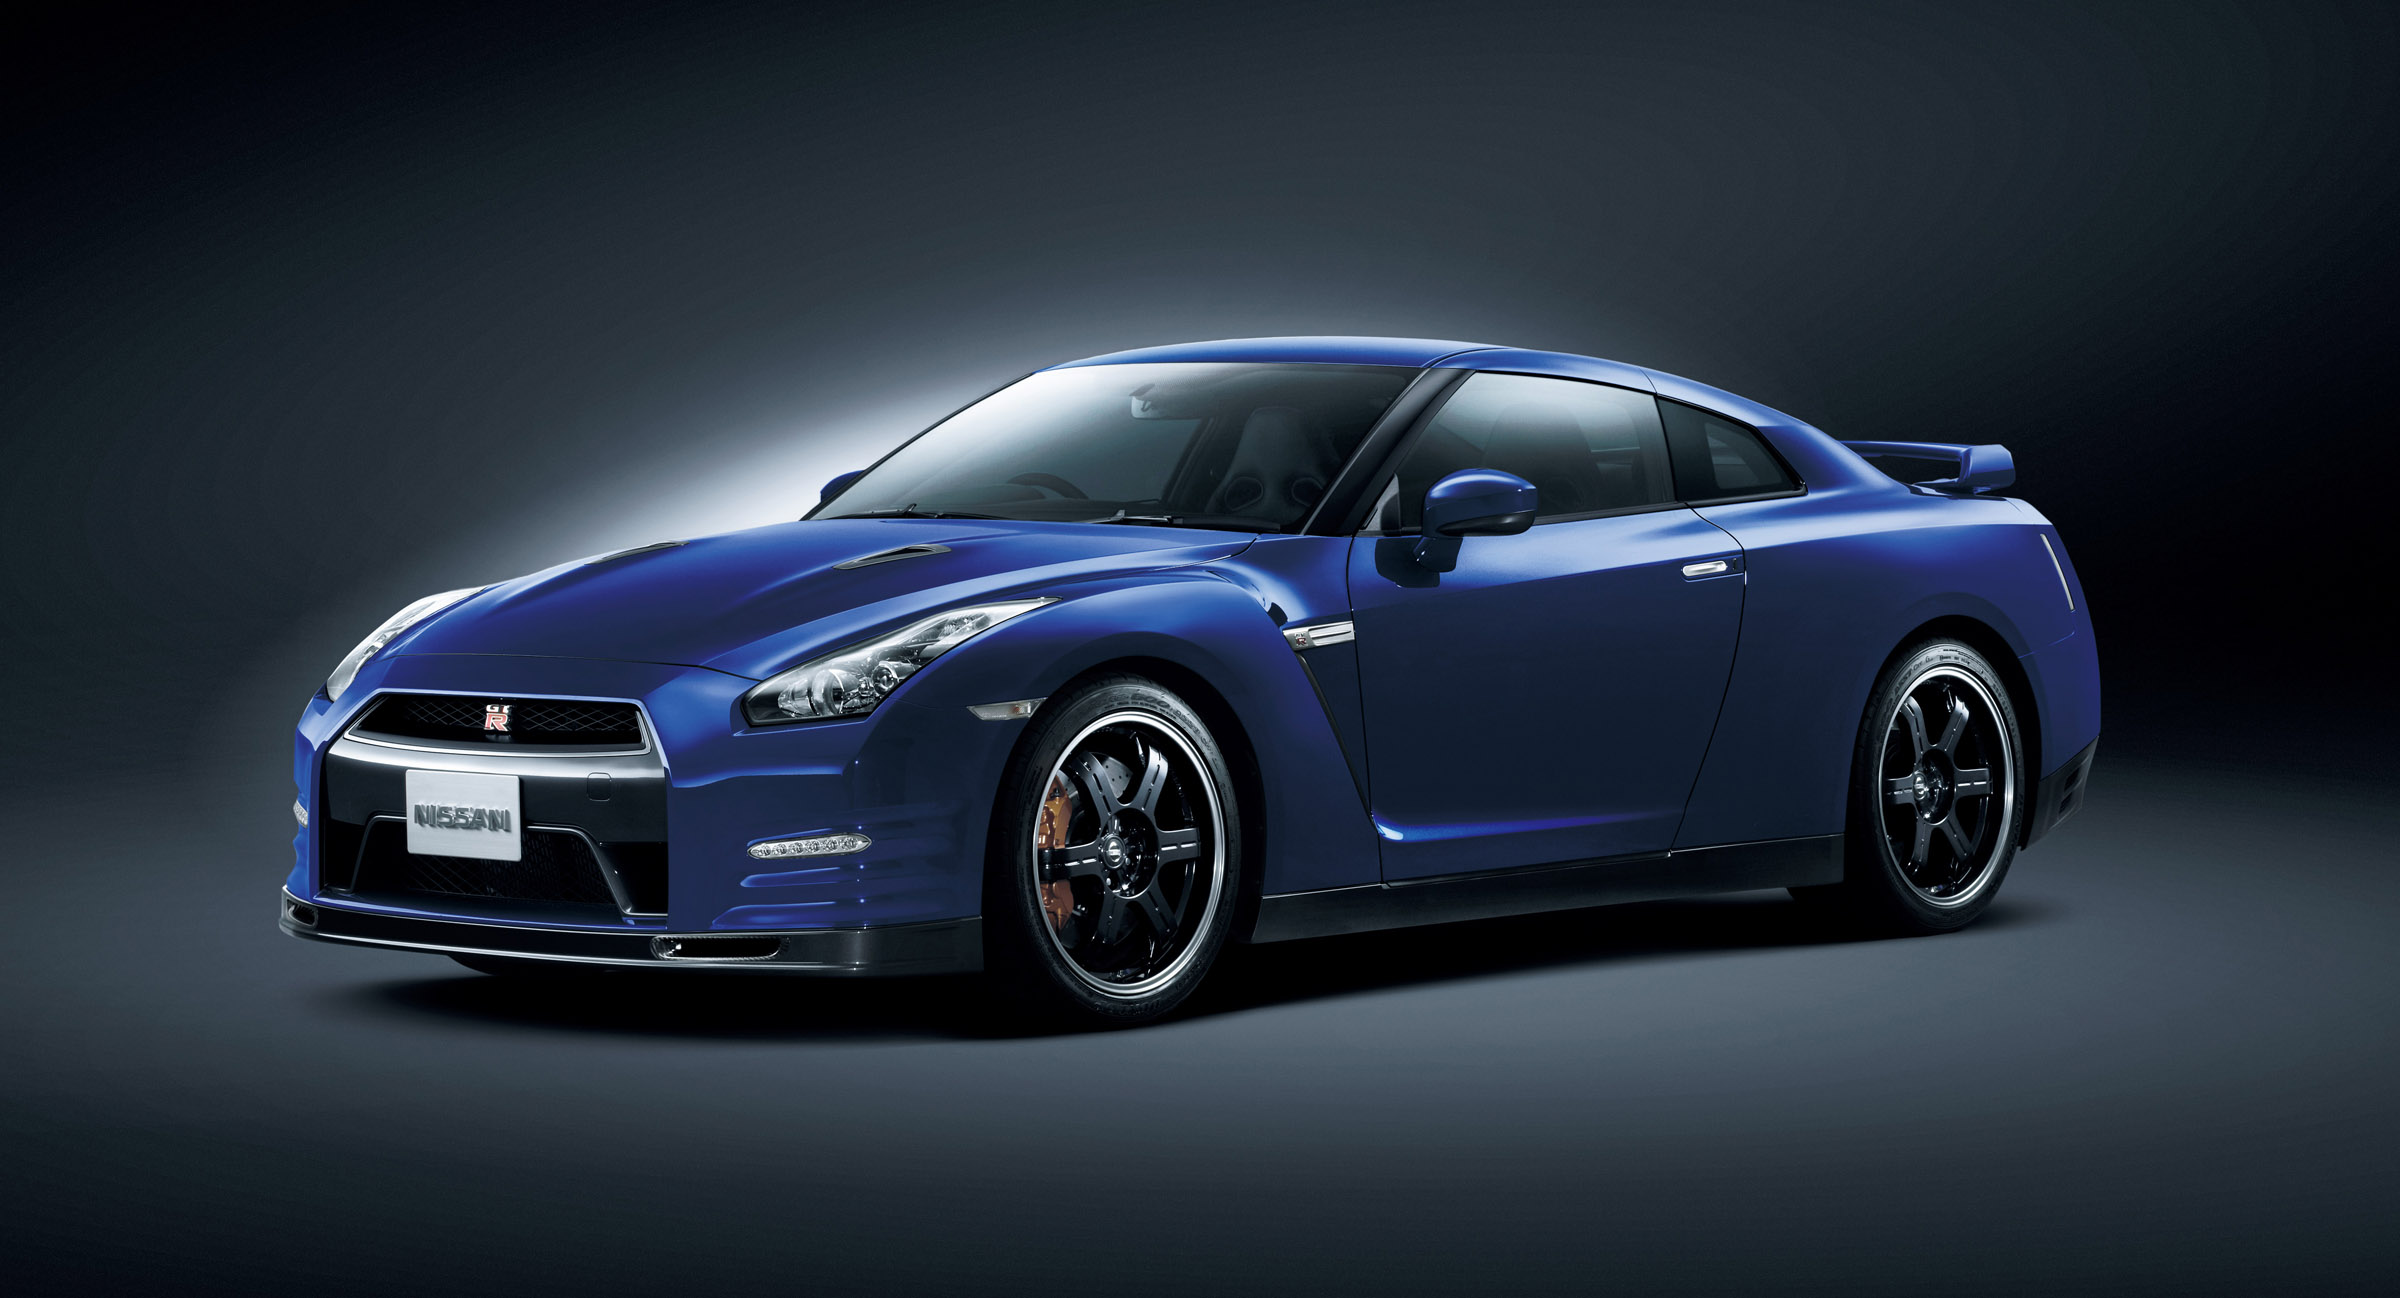 2012 nissan gt r pure edition picture 62426. Black Bedroom Furniture Sets. Home Design Ideas